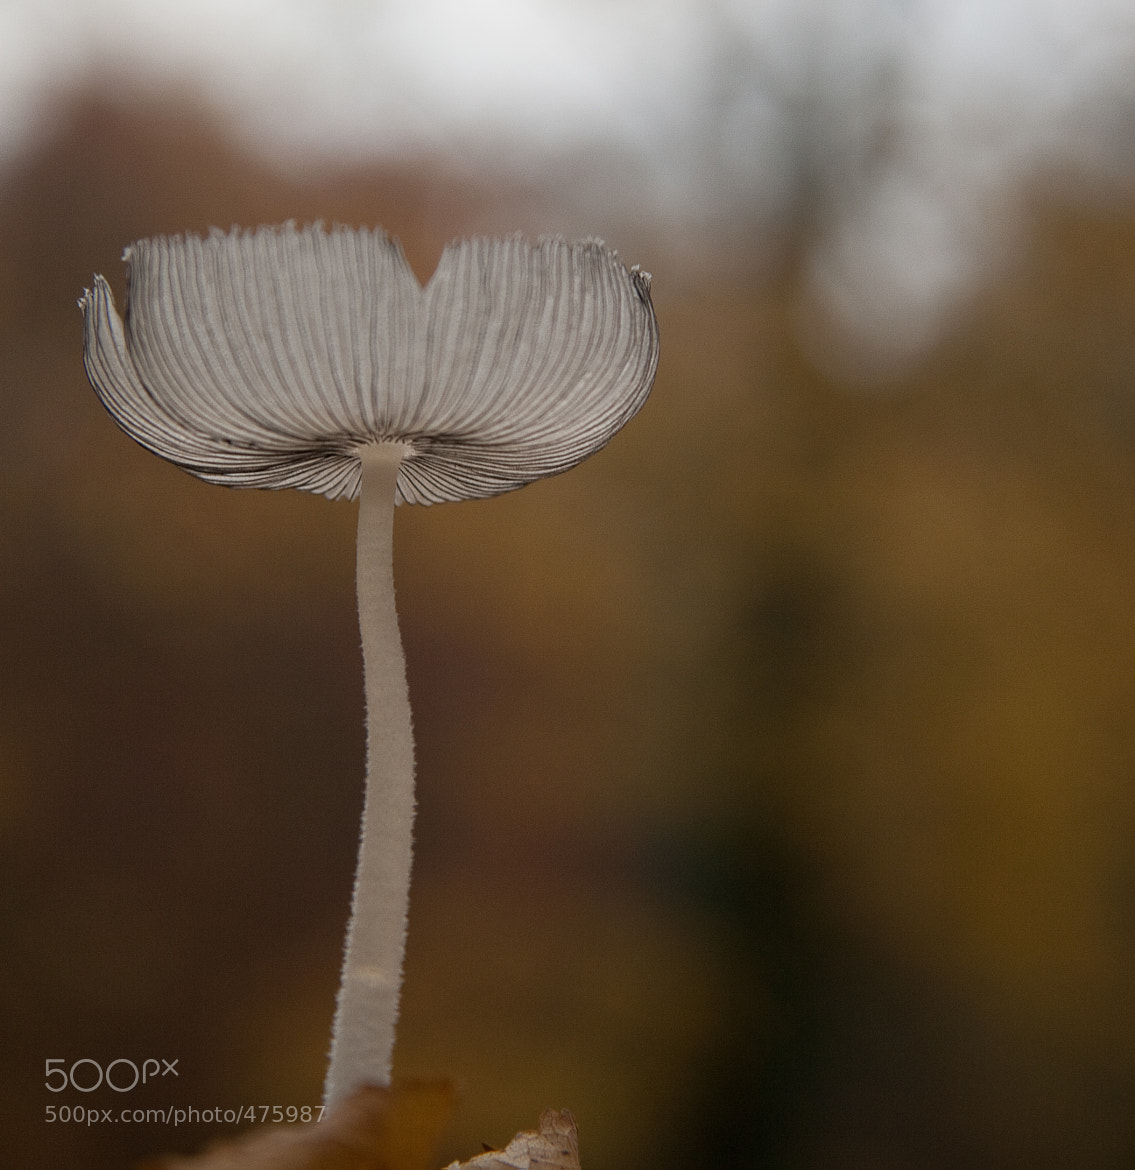 Photograph Little mushroom by Marco de Groot on 500px